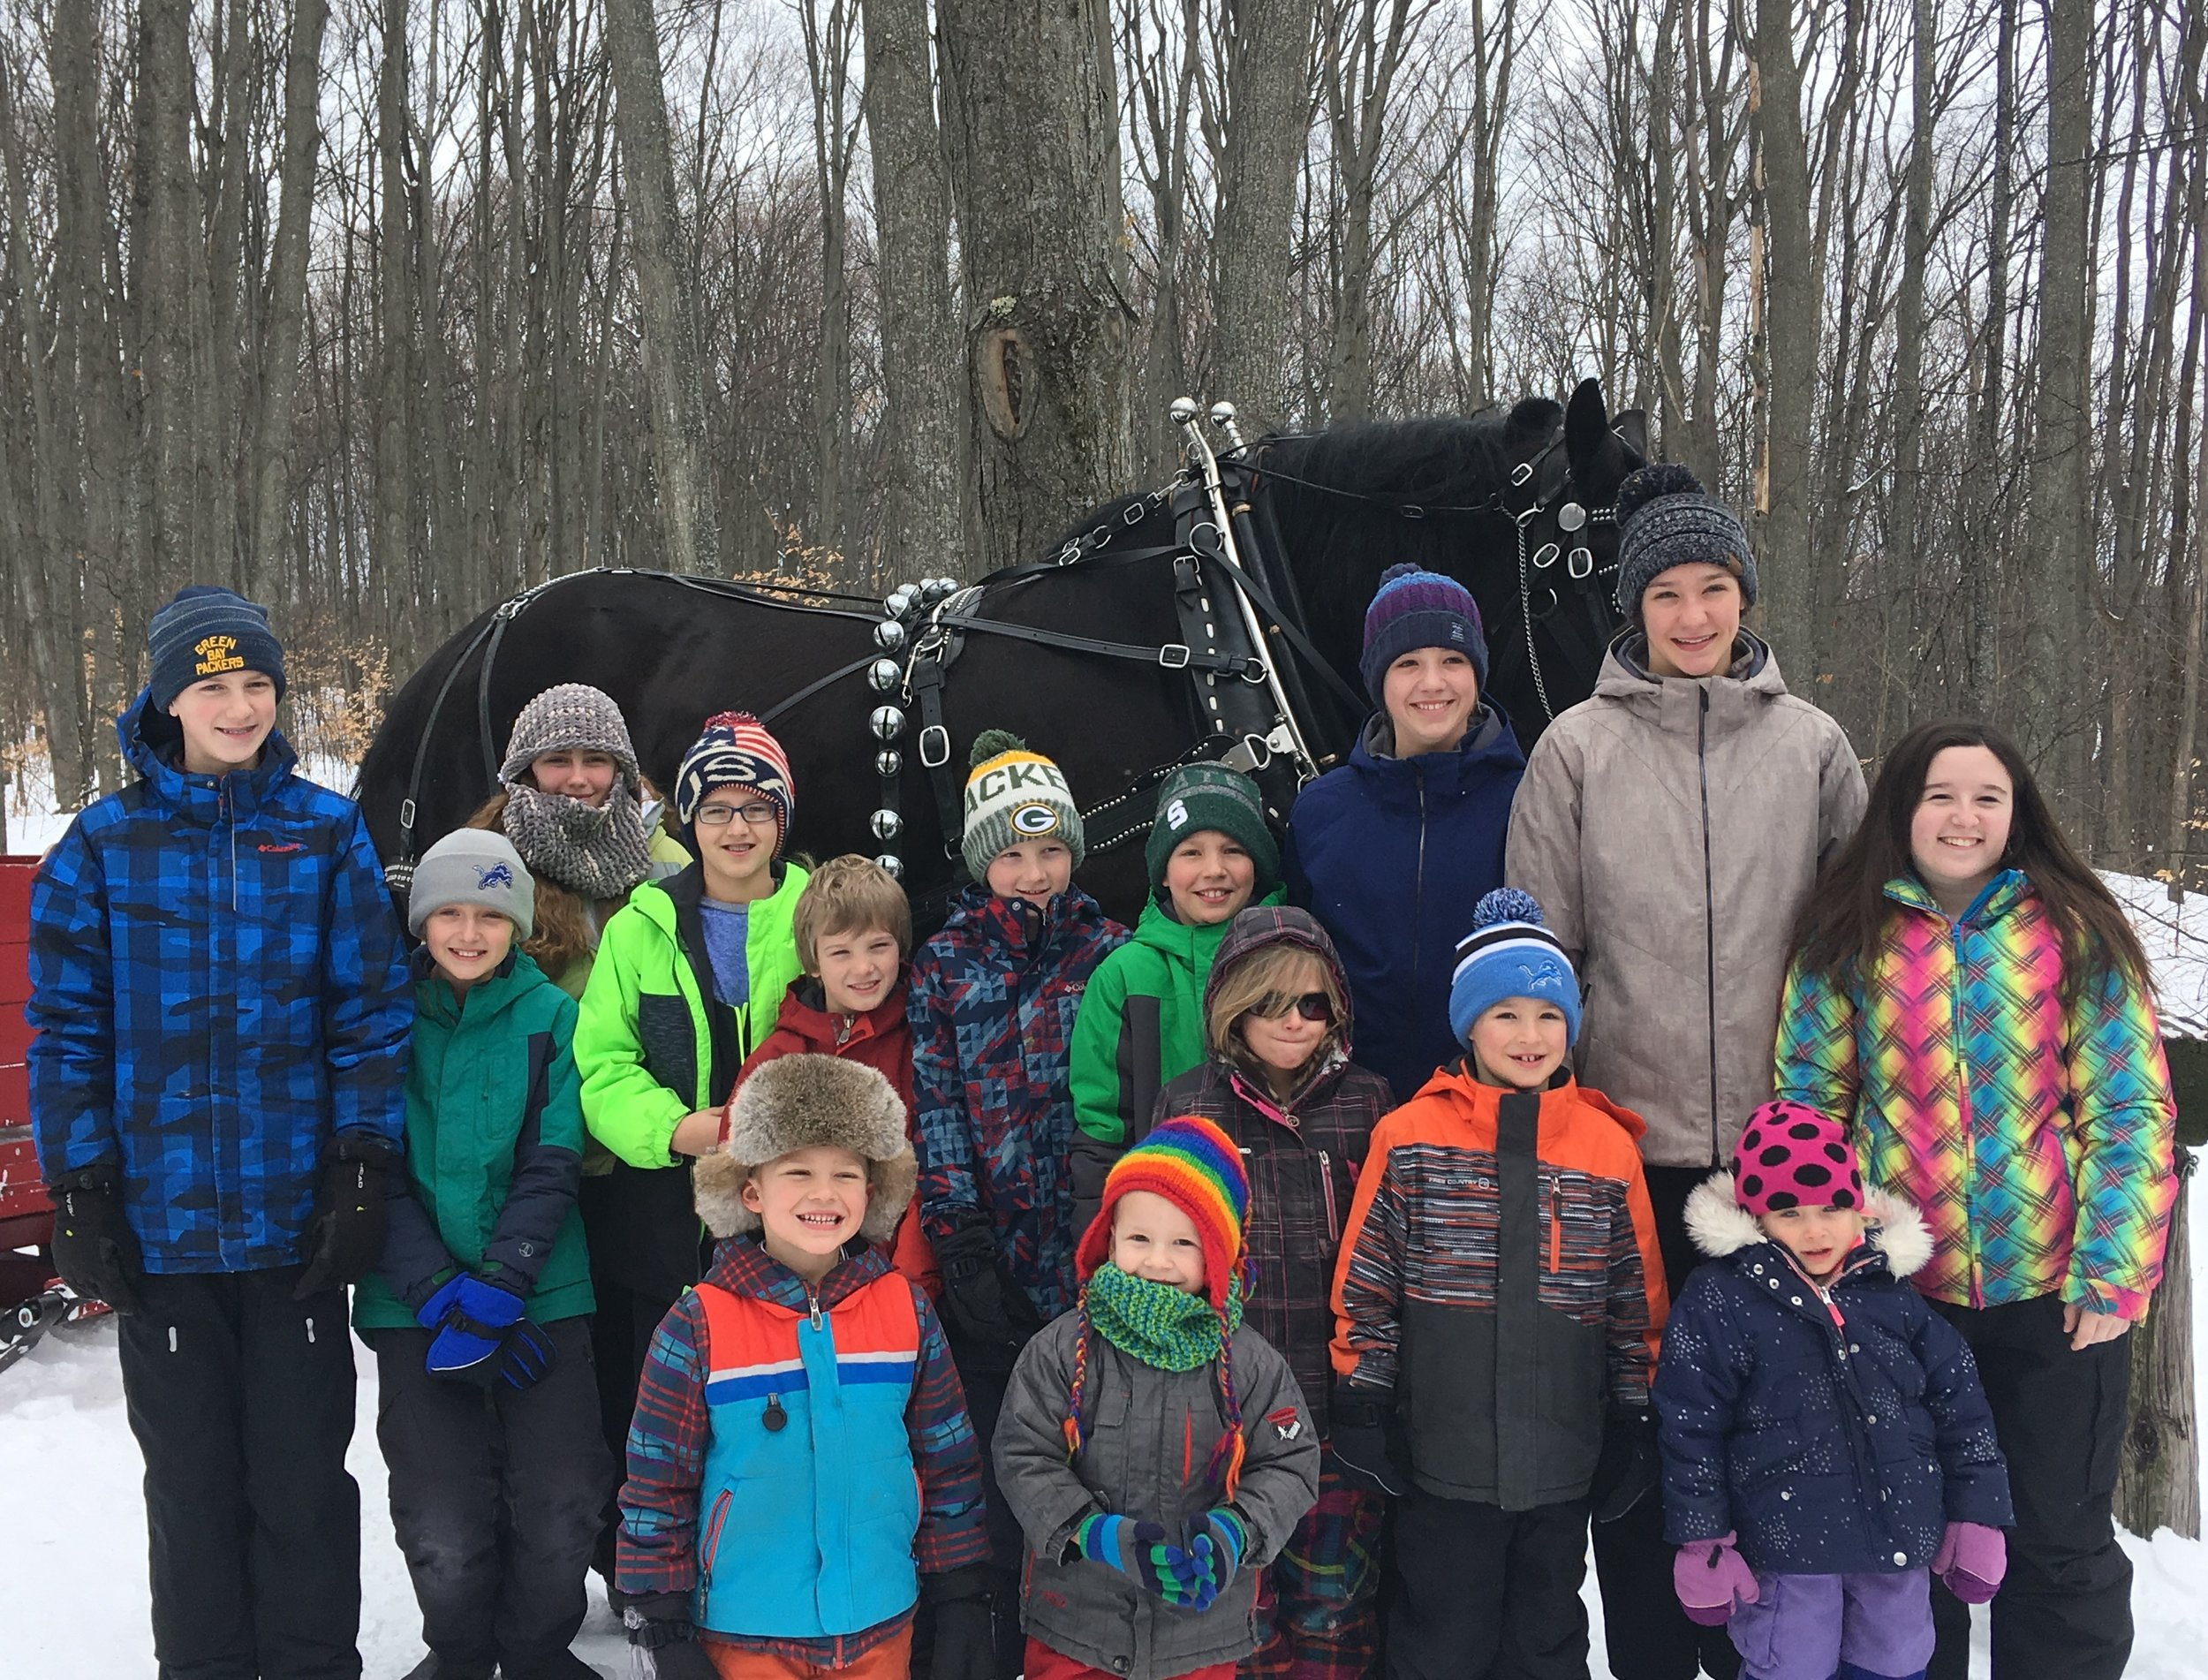 Sleigh ride 2019 - A big thank you to Tom Cyr (Black Horse Farm) for giving our youth group a memorable winter sleigh ride.